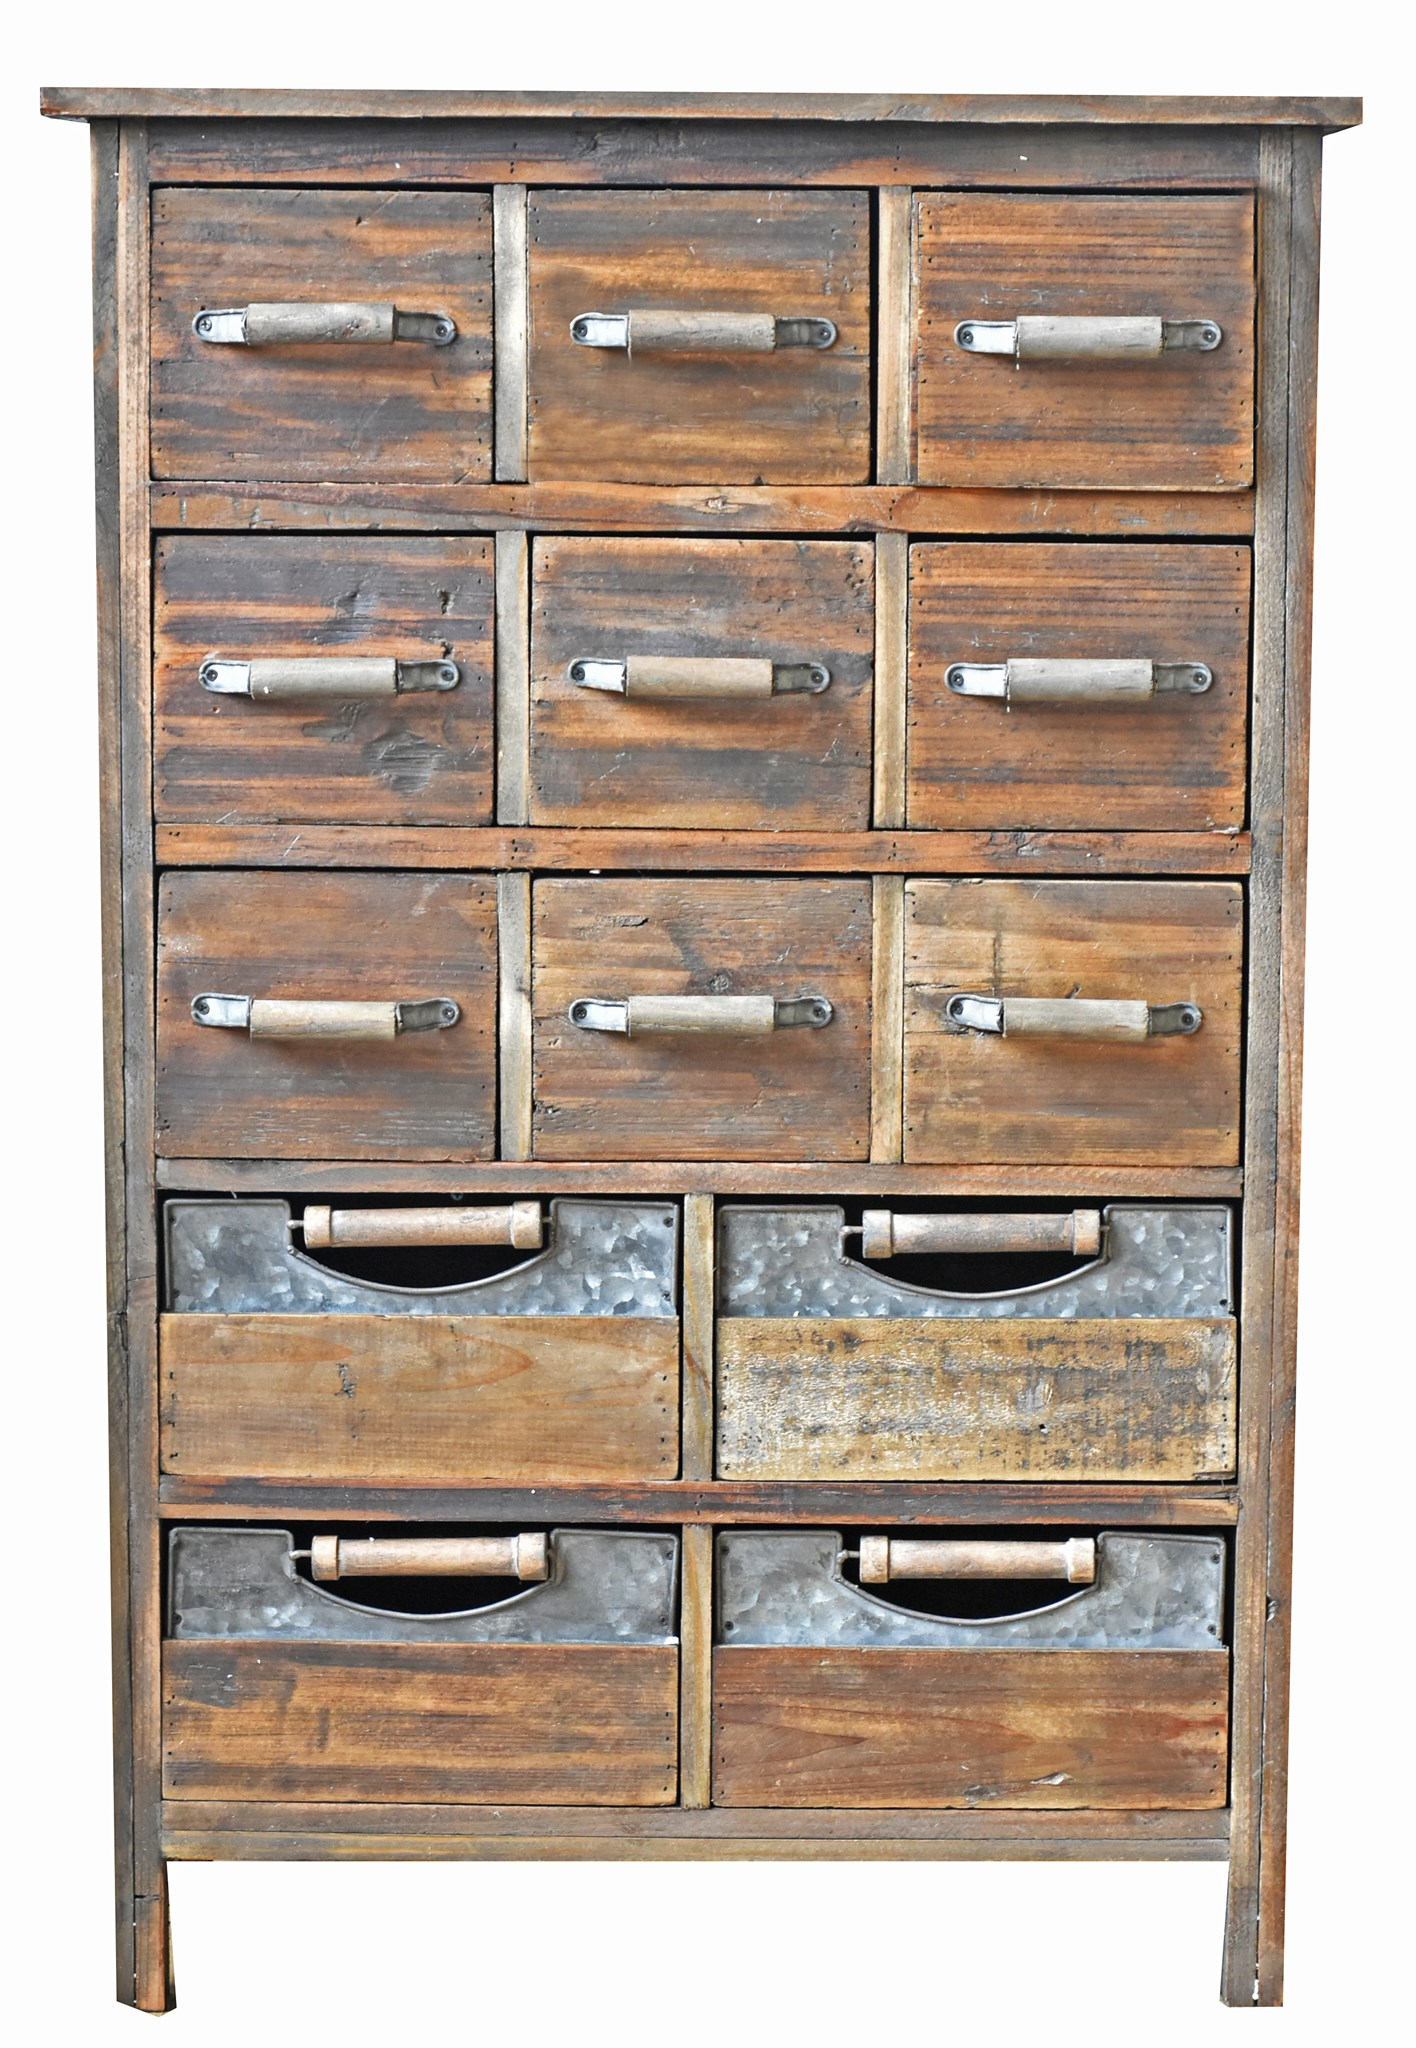 Best wood for indoor furniture House 13 Multi Drawer Rustic Wood Cabinet 26x12x39 Inches made From Very Old Recycled Wood For North American Country Home 13 Multi Drawer Rustic Wood Cabinet 26x12x39 Inches made From Very